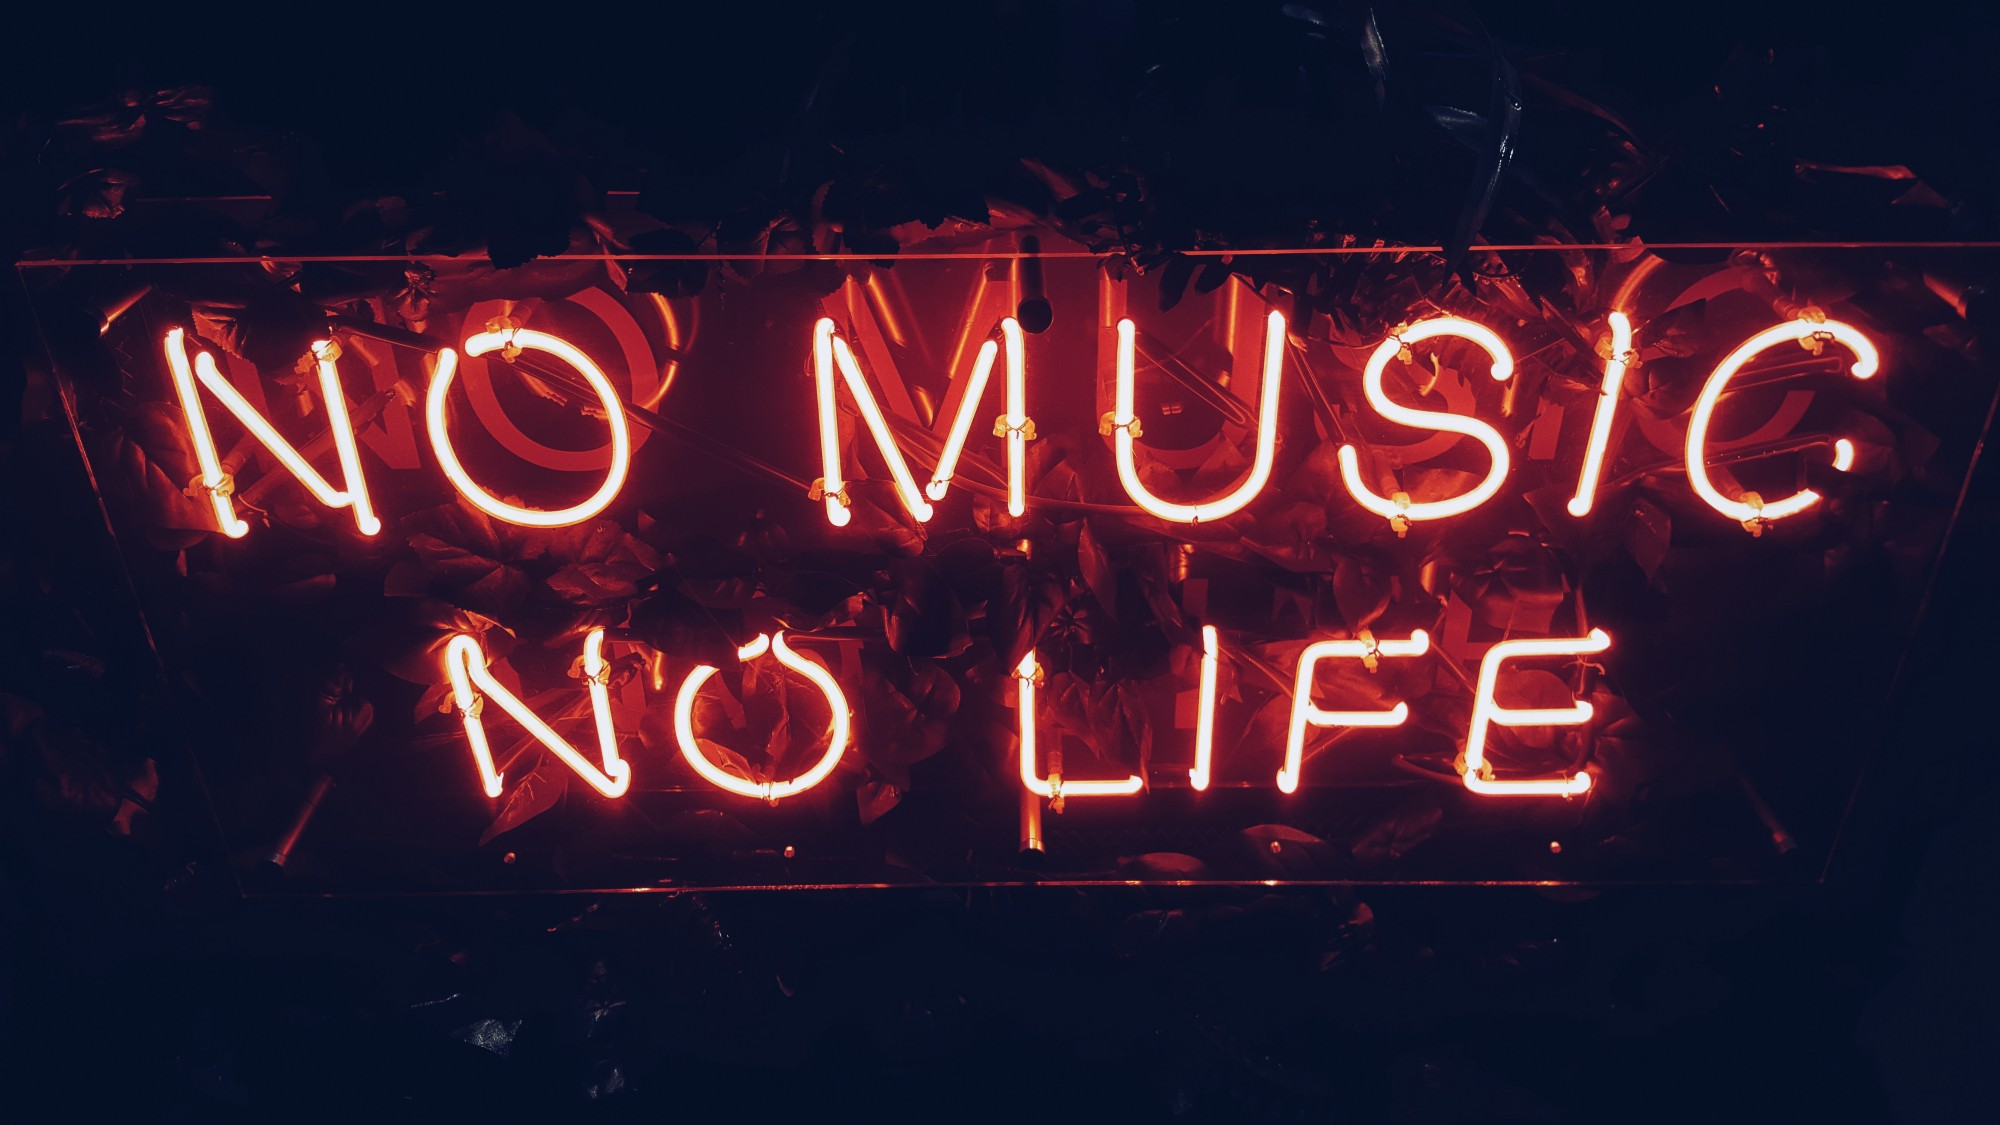 """NO MUSIC NO LIFE"" scrawled in an erratic neon glow against a dark background. The words slant against a slight reflection."